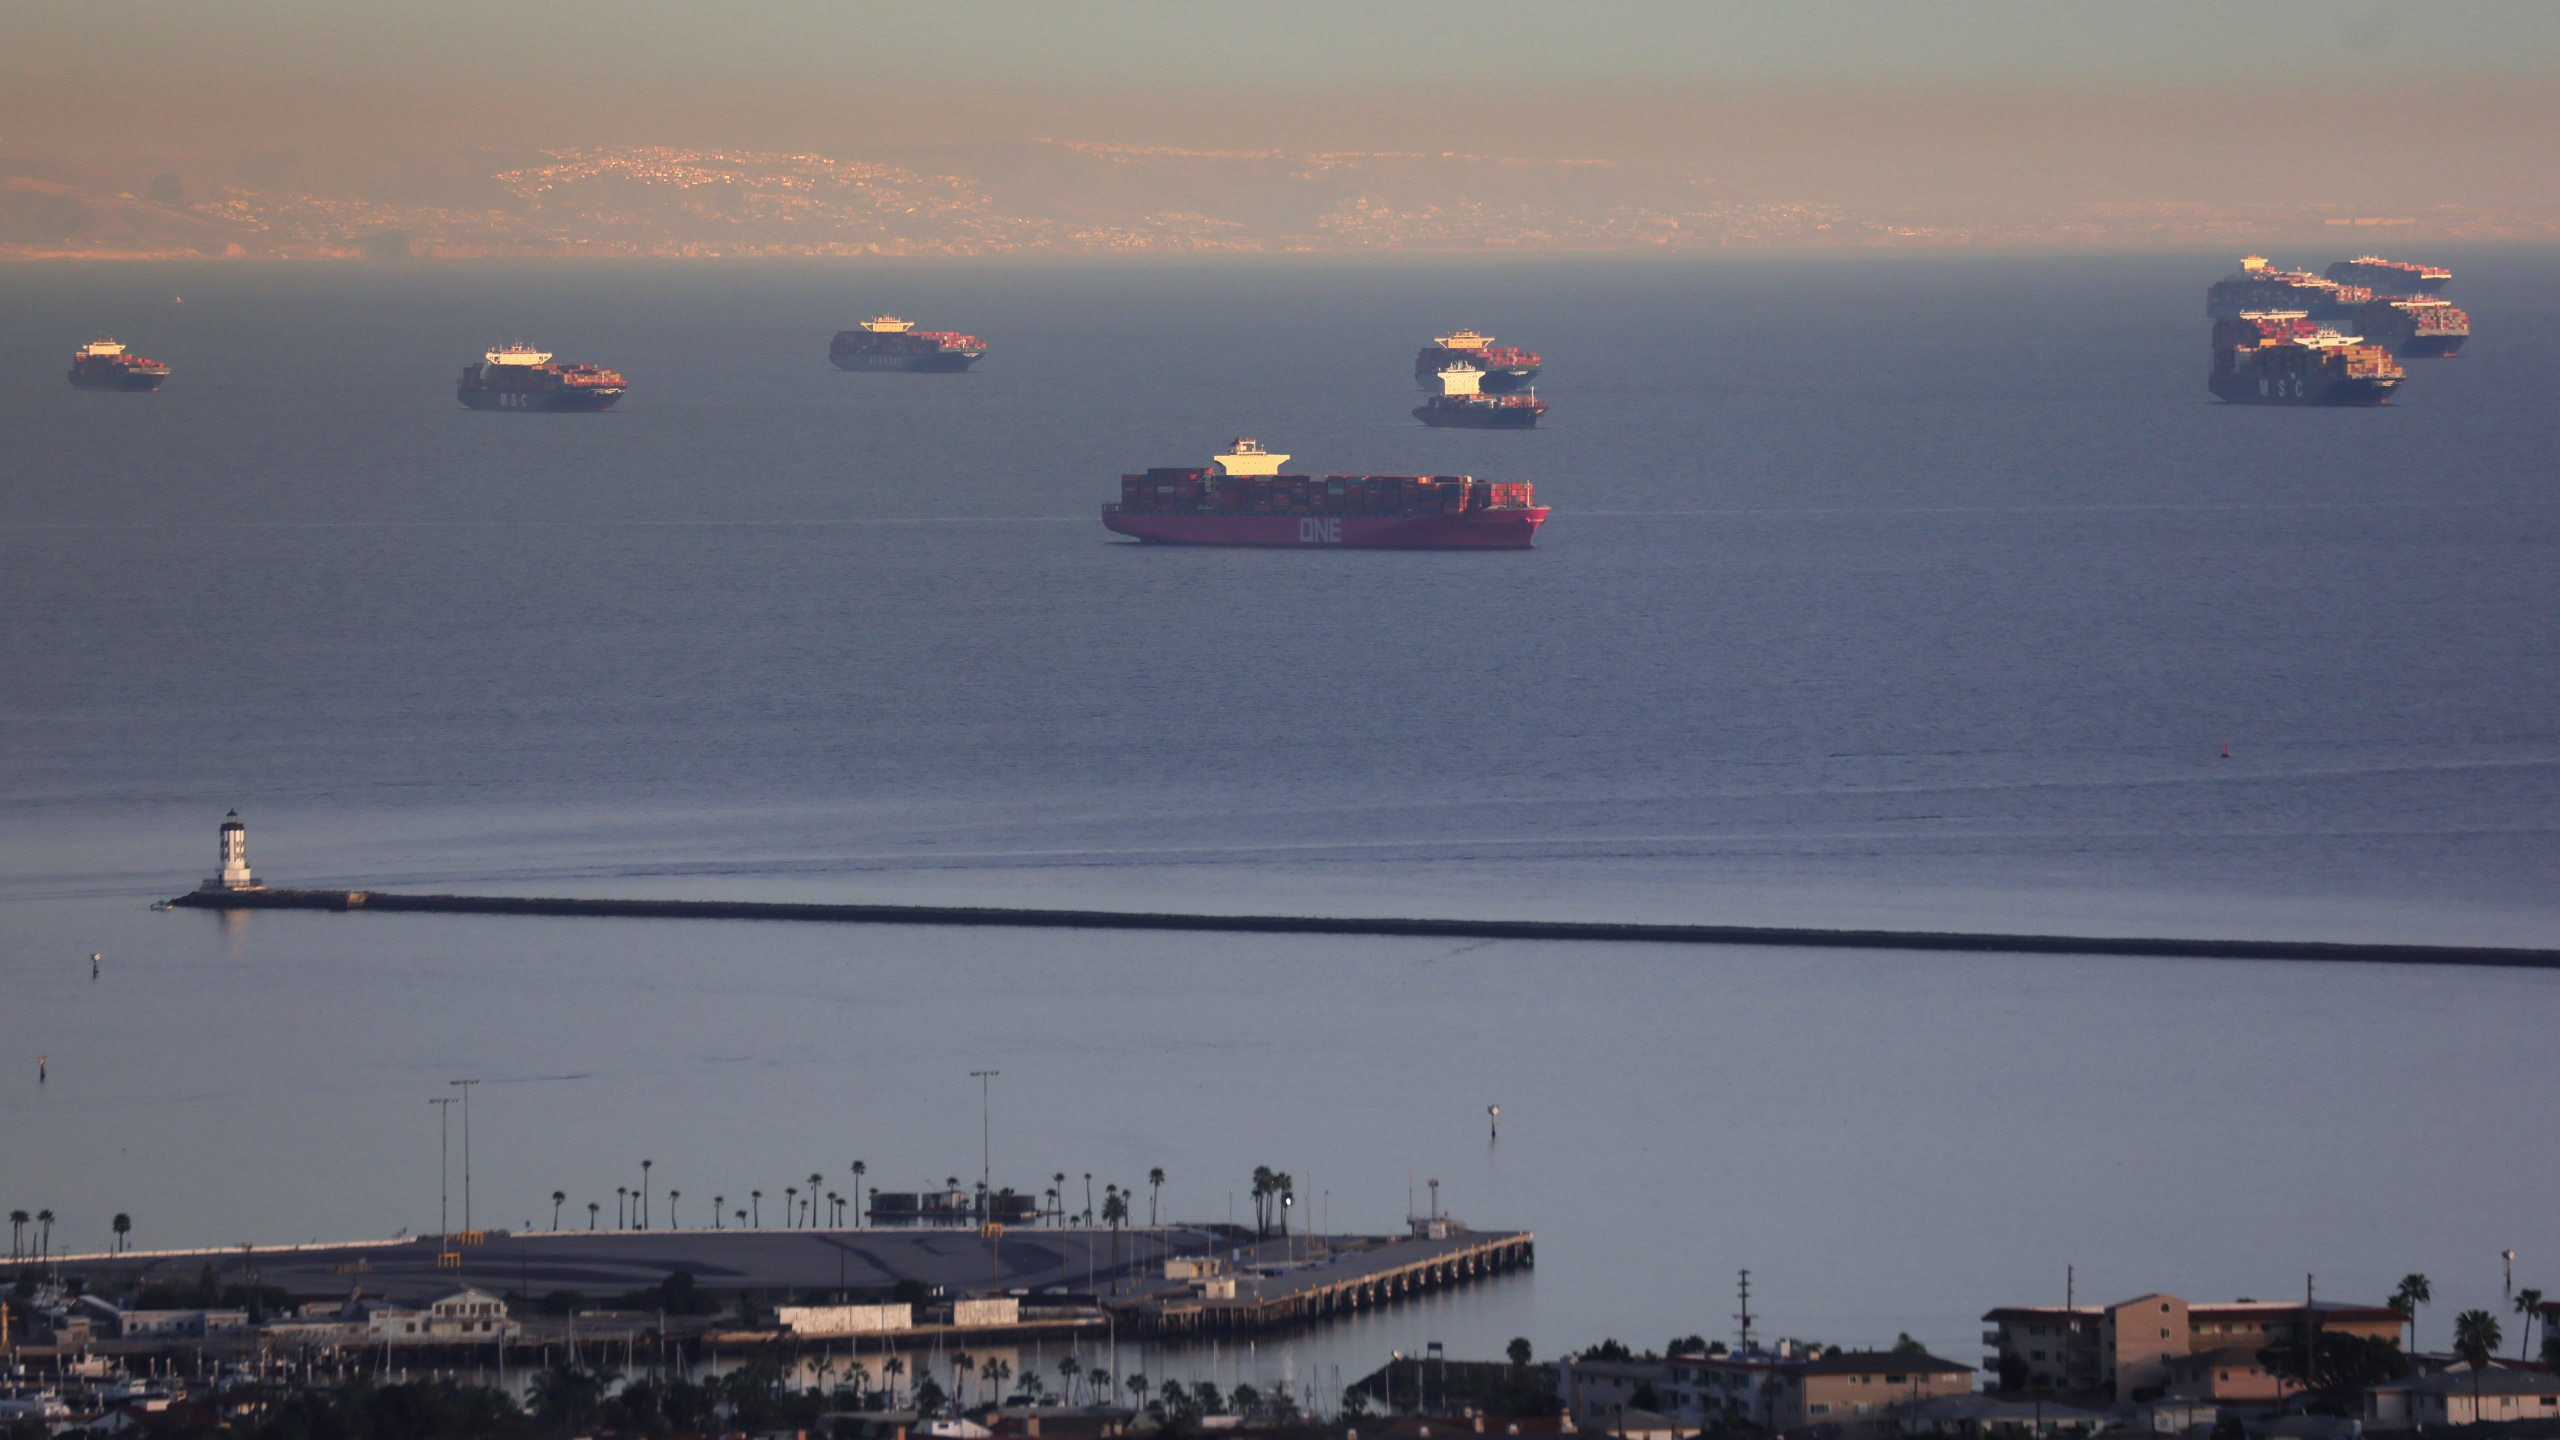 Container ships and tankers are anchored close to the ports of Los Angeles and Long Beach on Feb. 1, 2021 in San Pedro. (Mario Tama/Getty Images)